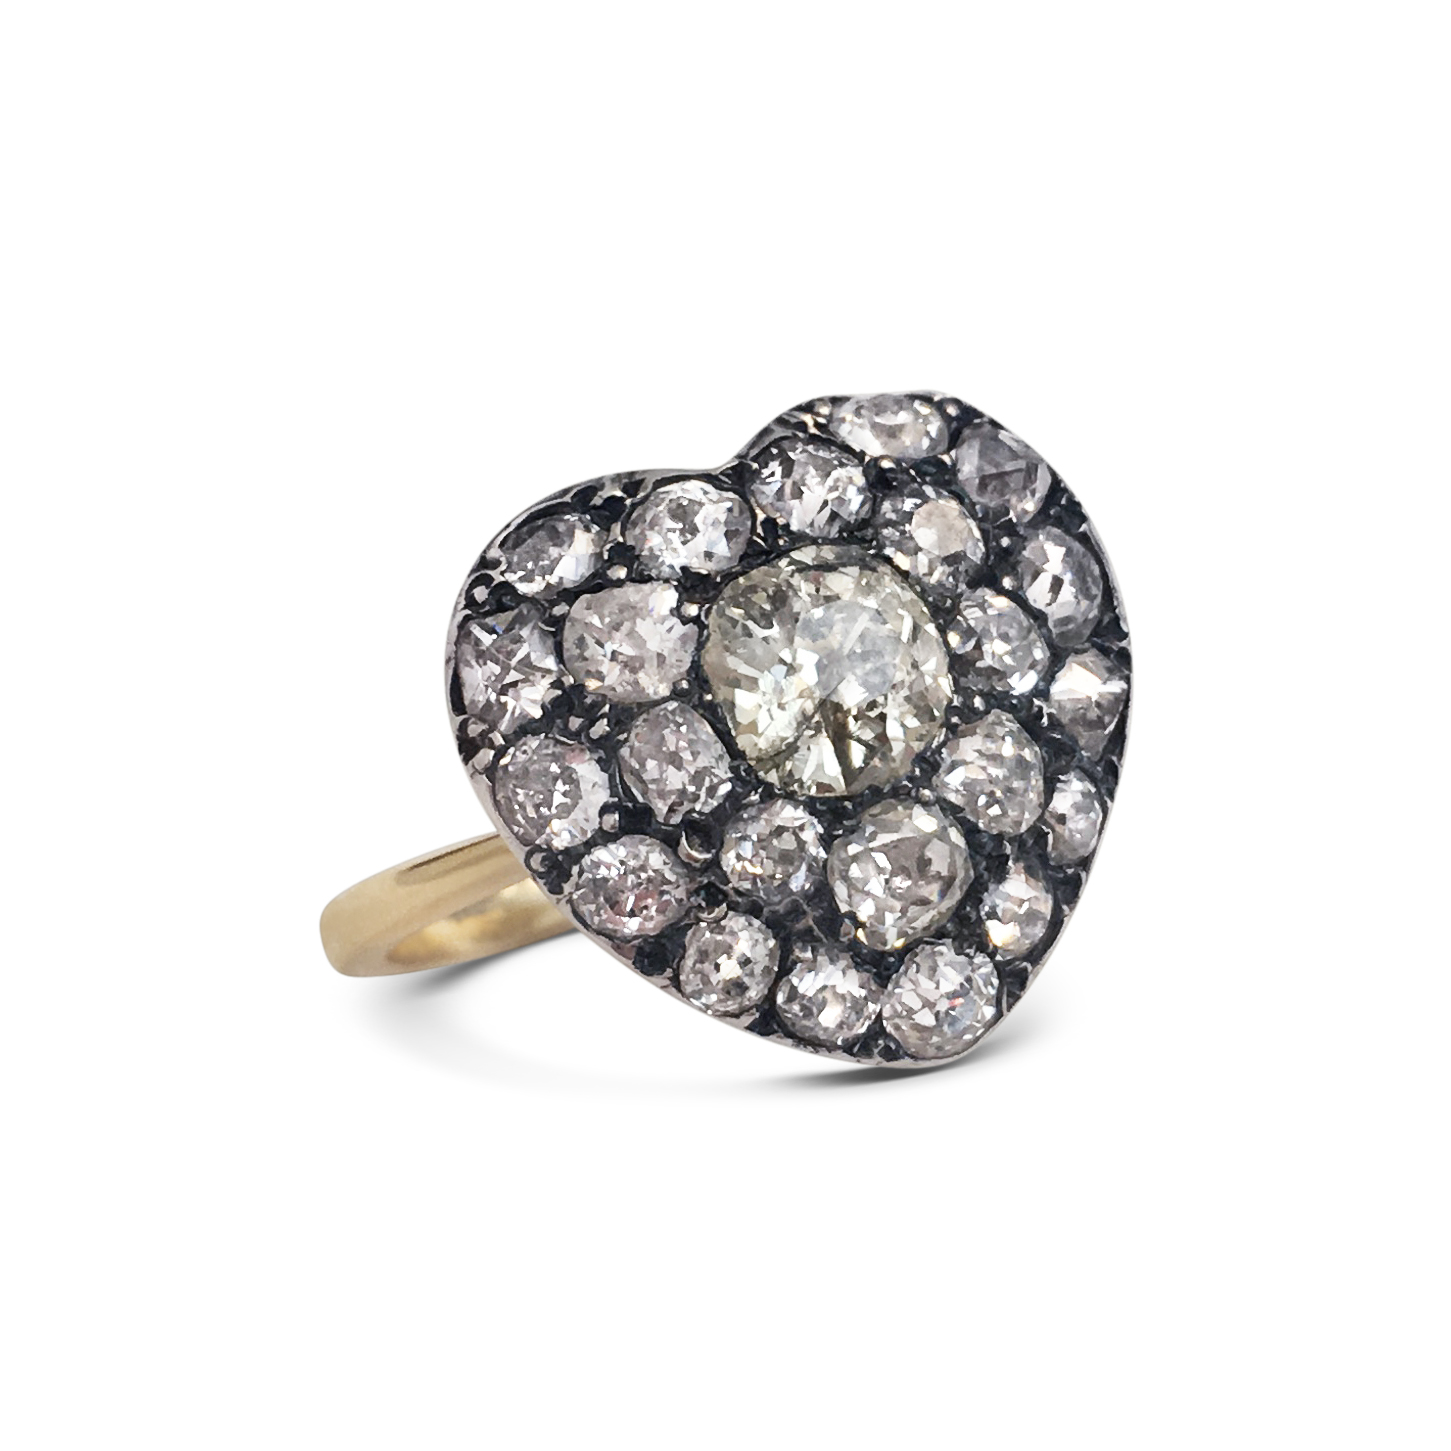 Old-cut diamond antique style heart-shaped cluster ring